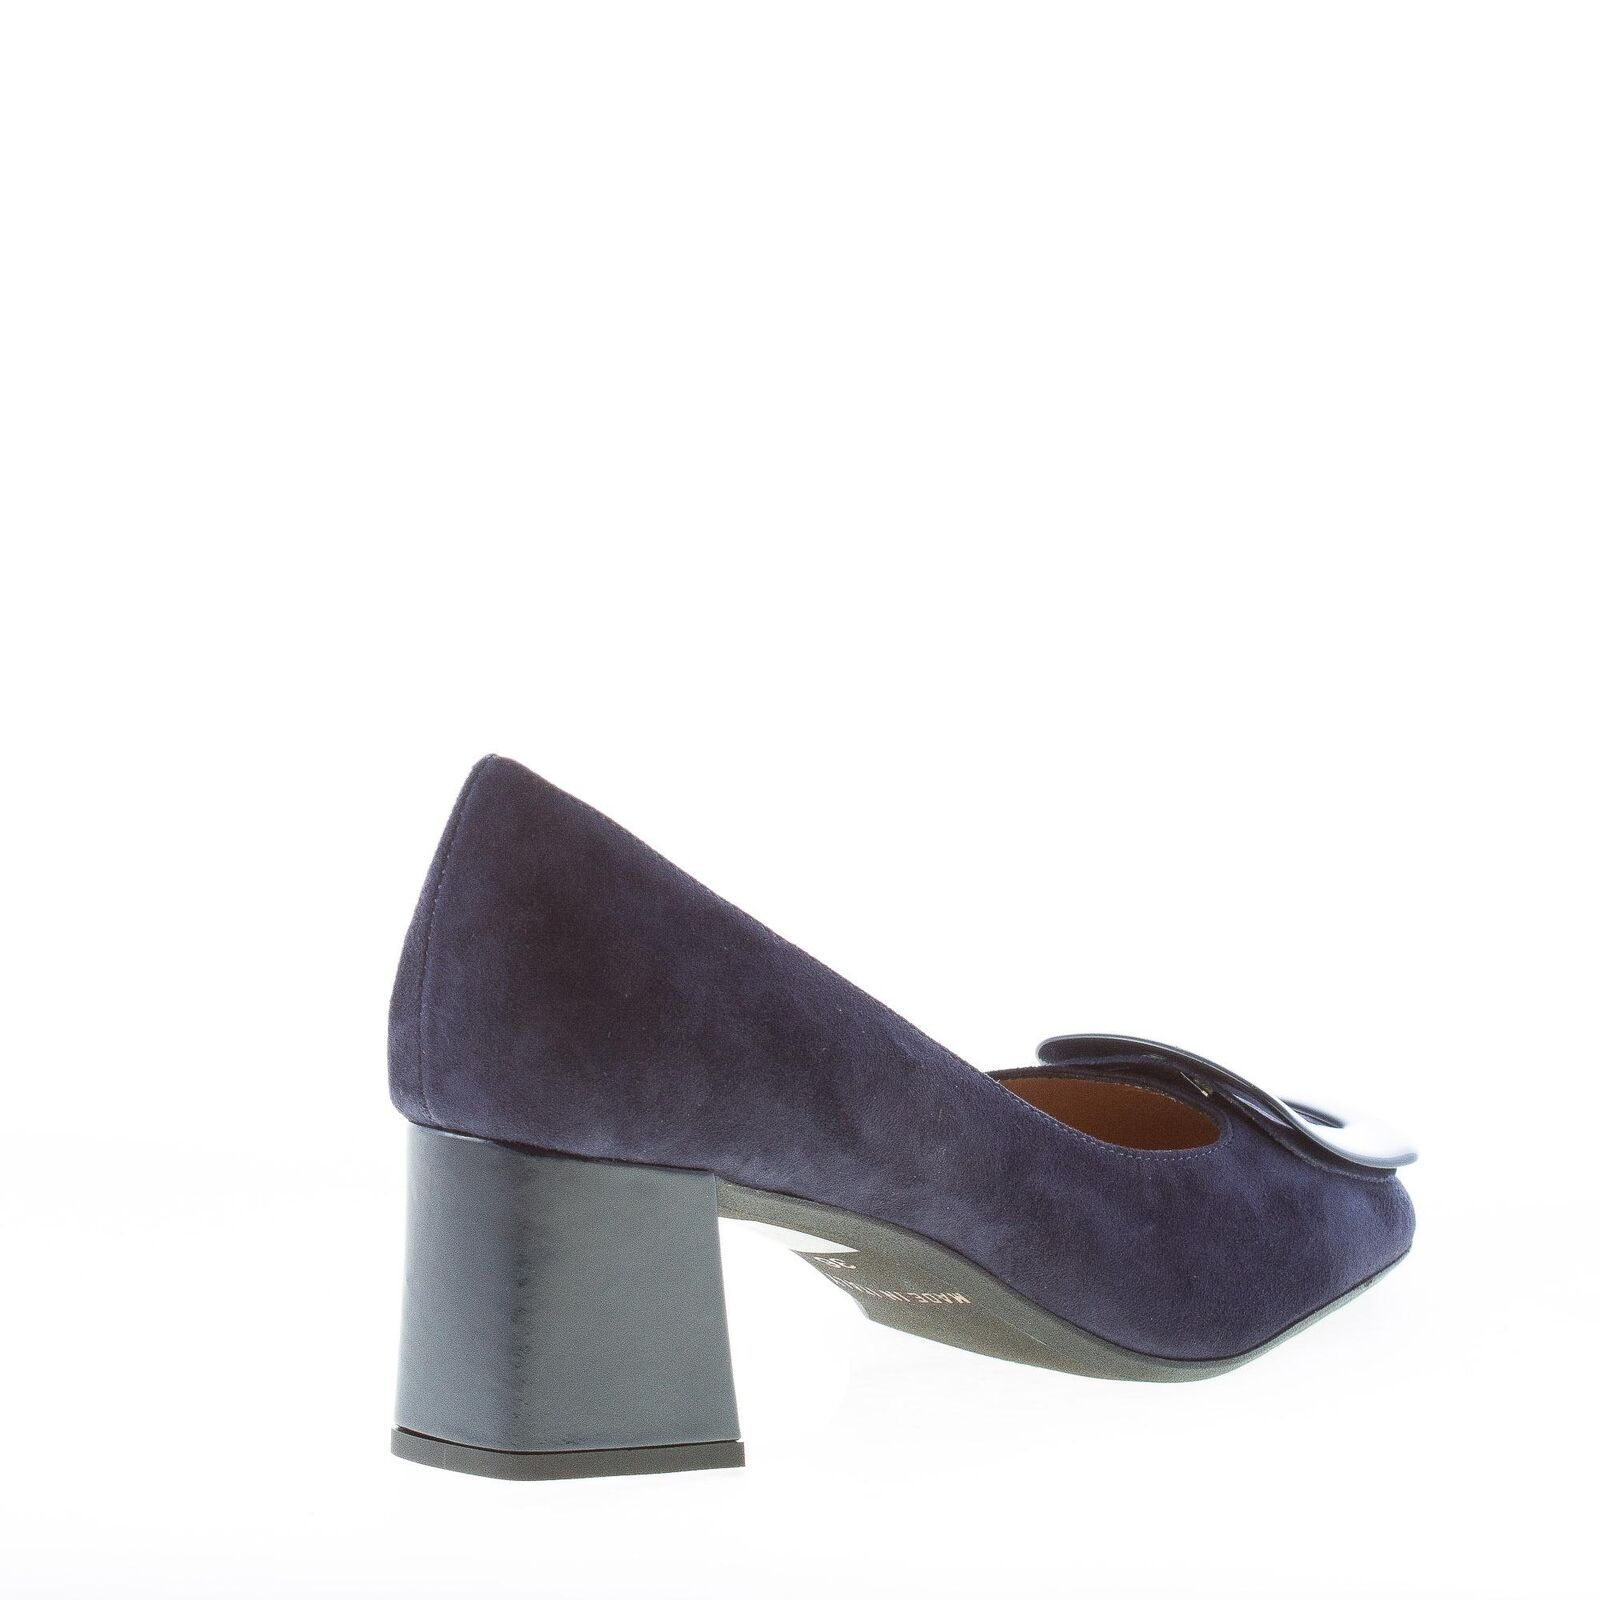 IL BORGO FIRENZE damen schuhe made made made in Italy Blue suede pump with navy buckle 079dd4